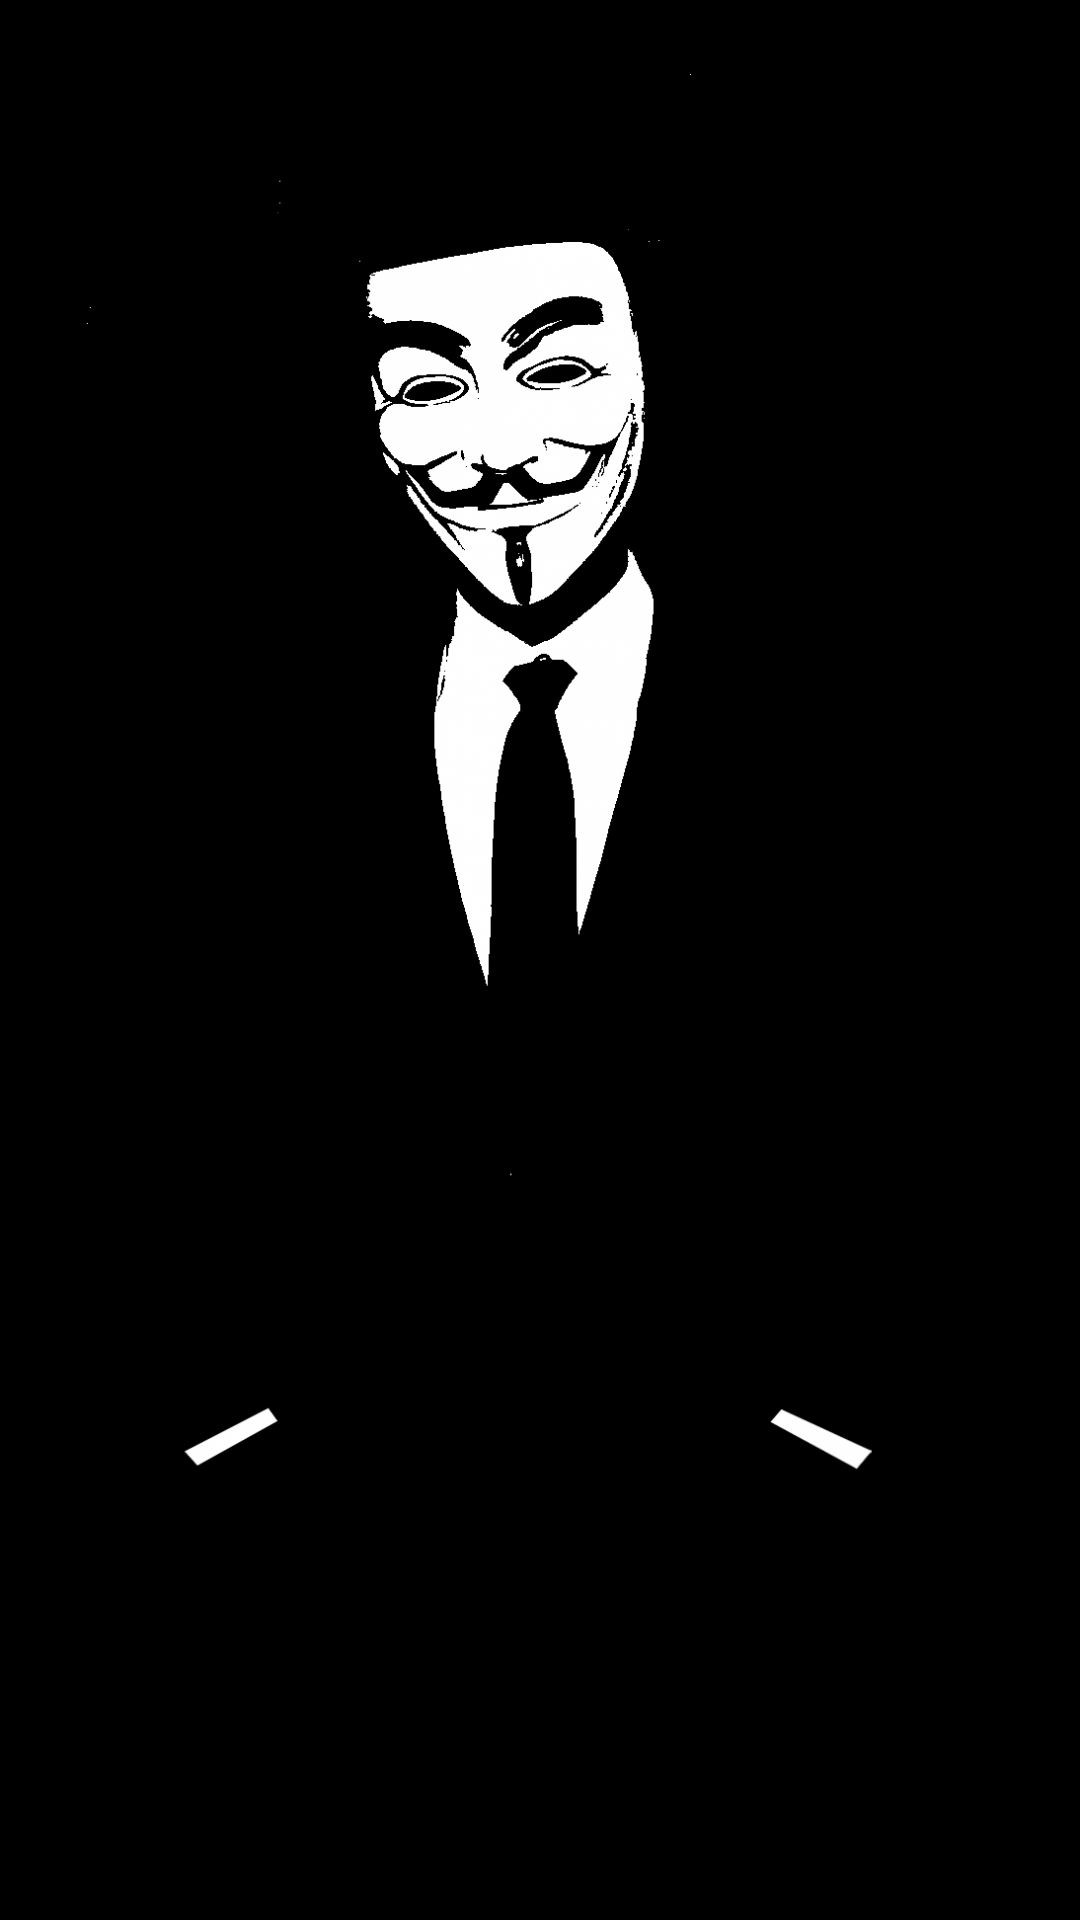 1080x1920 We have the best collection of Anonymous Wallpaper HD for Iphone for PC,  desktop, laptop, tablet and mobile device. Check and download them right  now!